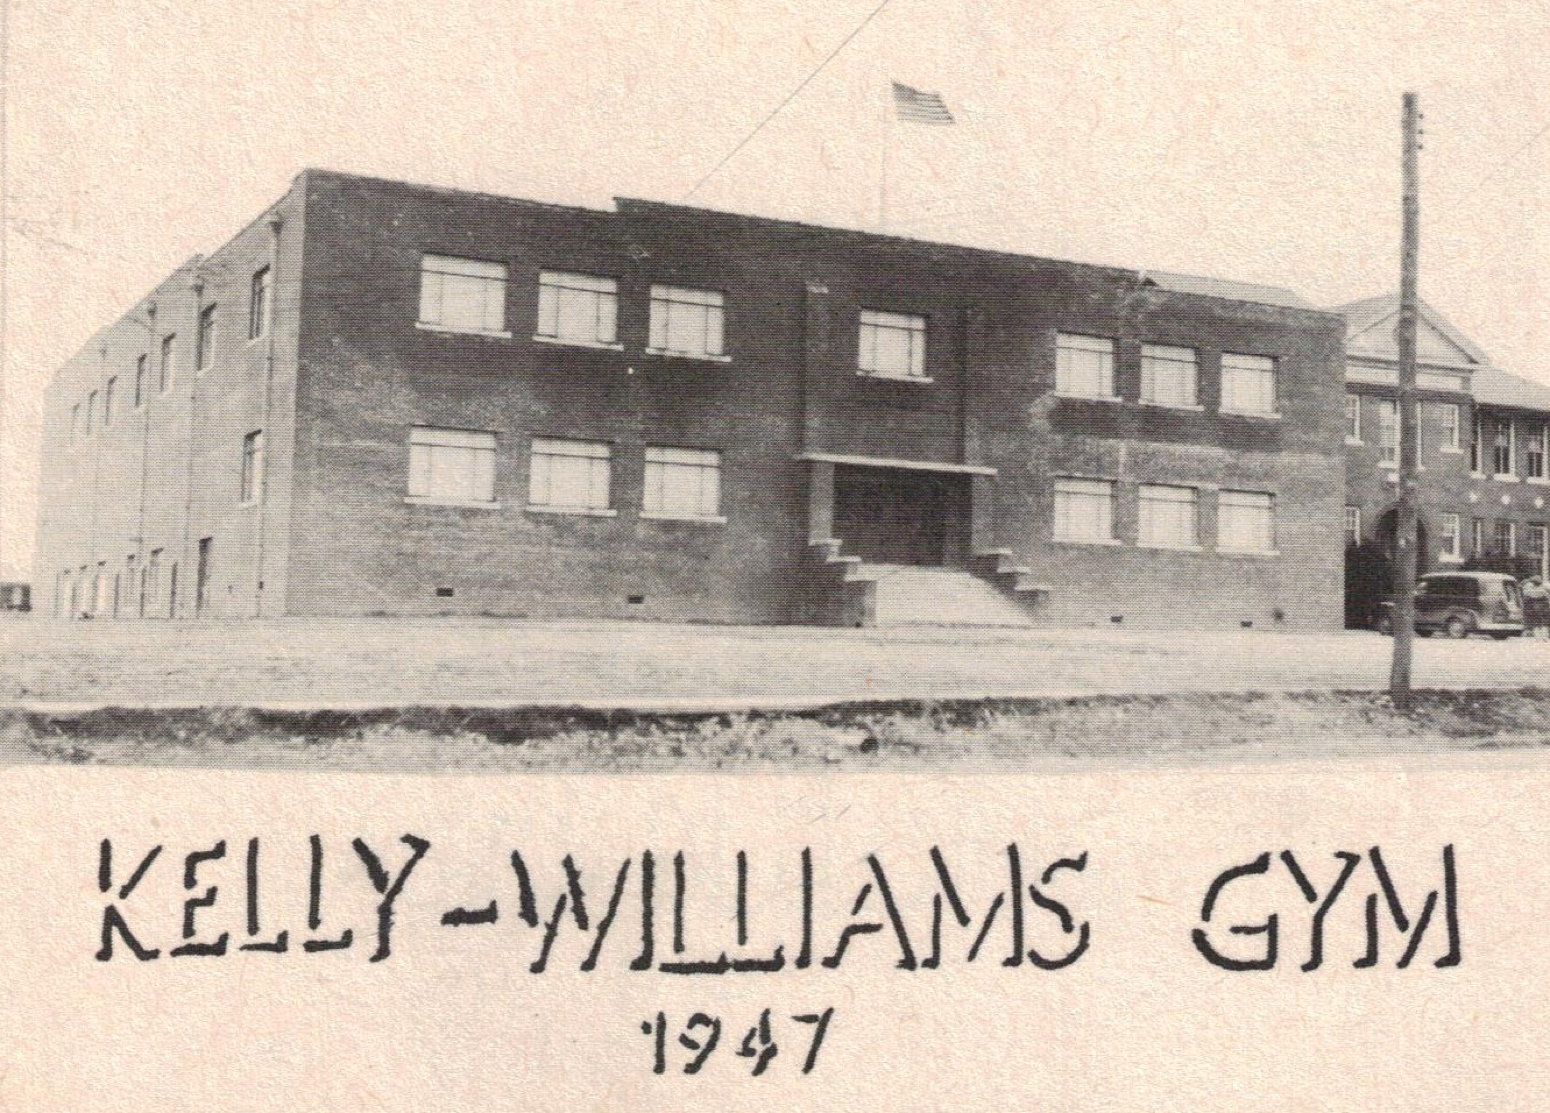 Old Image of Kelly-Williams Gym in 1947